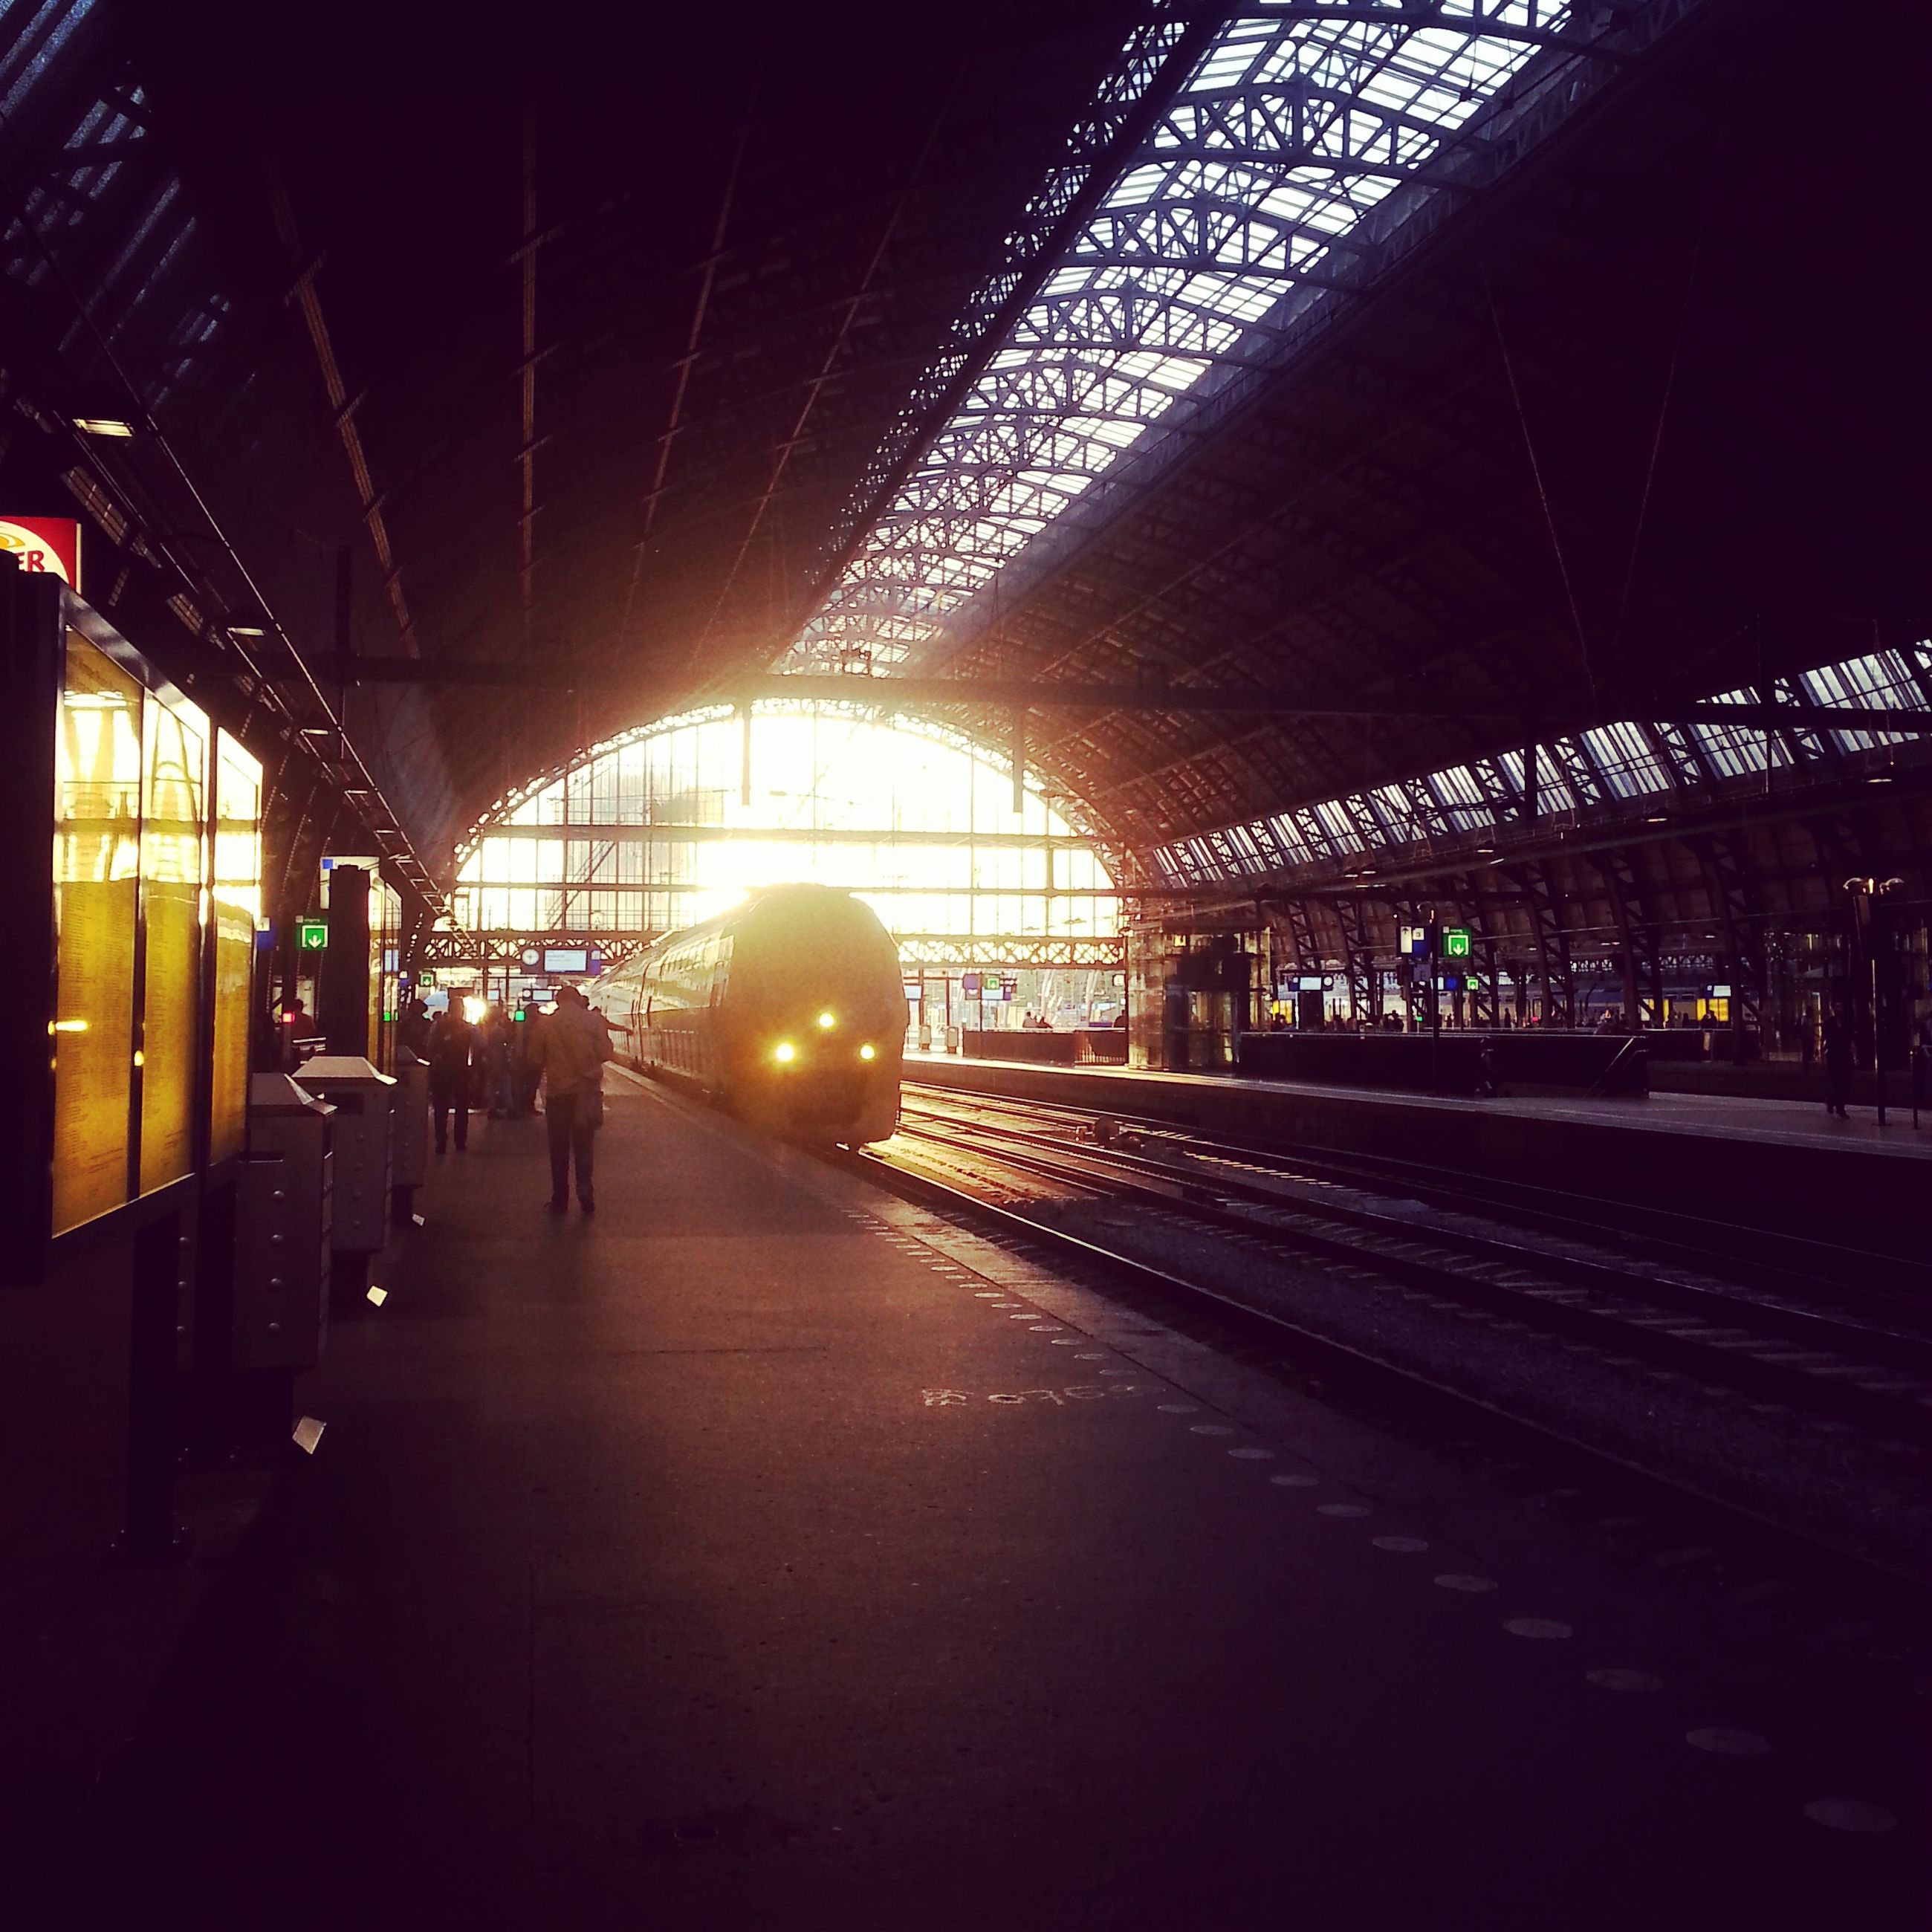 indoors, railroad station, transportation, illuminated, railroad track, railroad station platform, public transportation, rail transportation, built structure, ceiling, architecture, the way forward, incidental people, travel, architectural column, lighting equipment, arch, diminishing perspective, interior